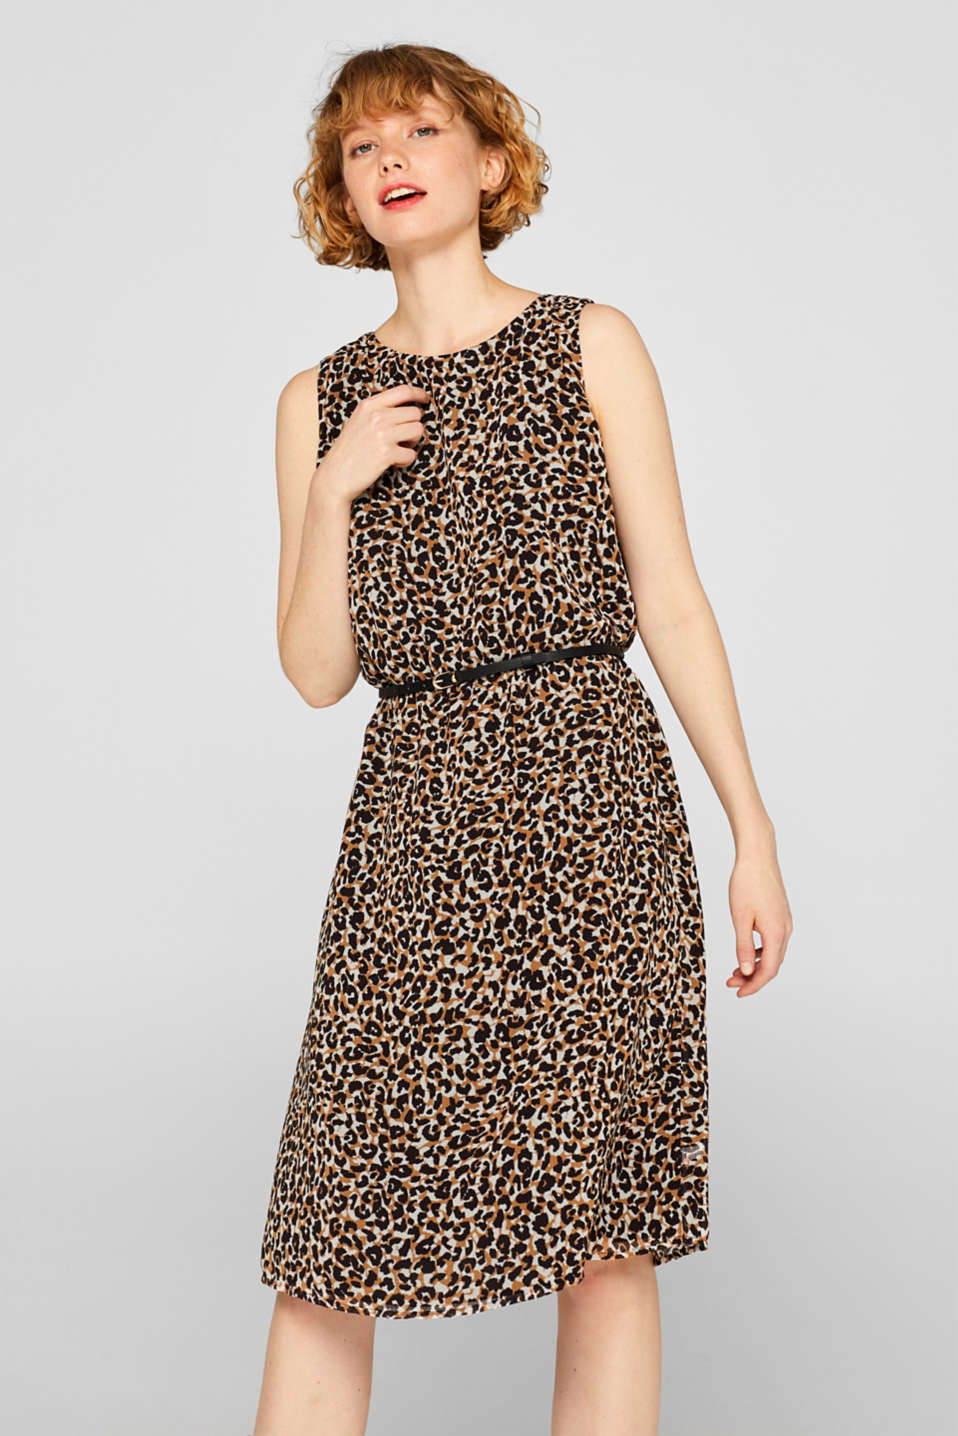 Esprit - Chiffon dress with leopard print and a bow